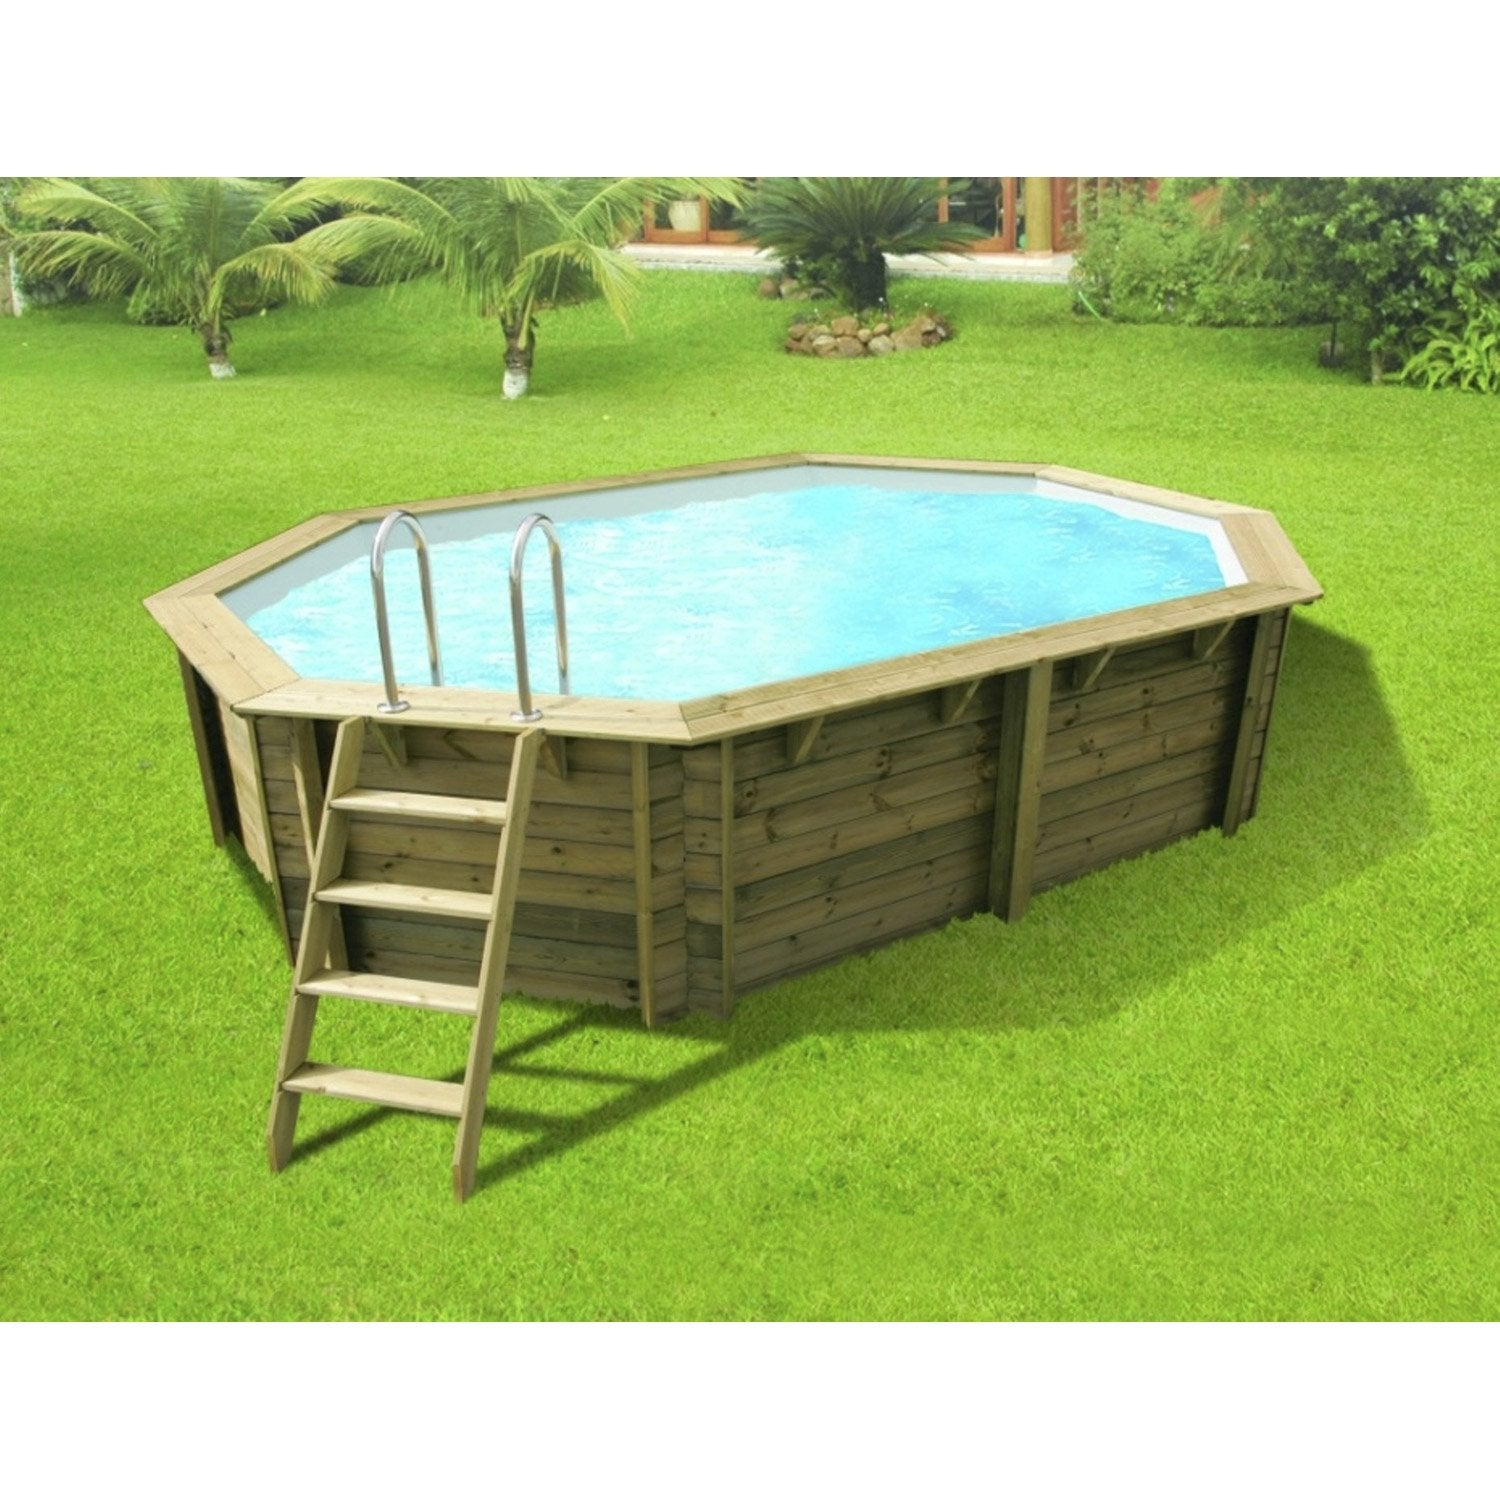 Piscine hors sol leclerc for Le roy merlin piscine